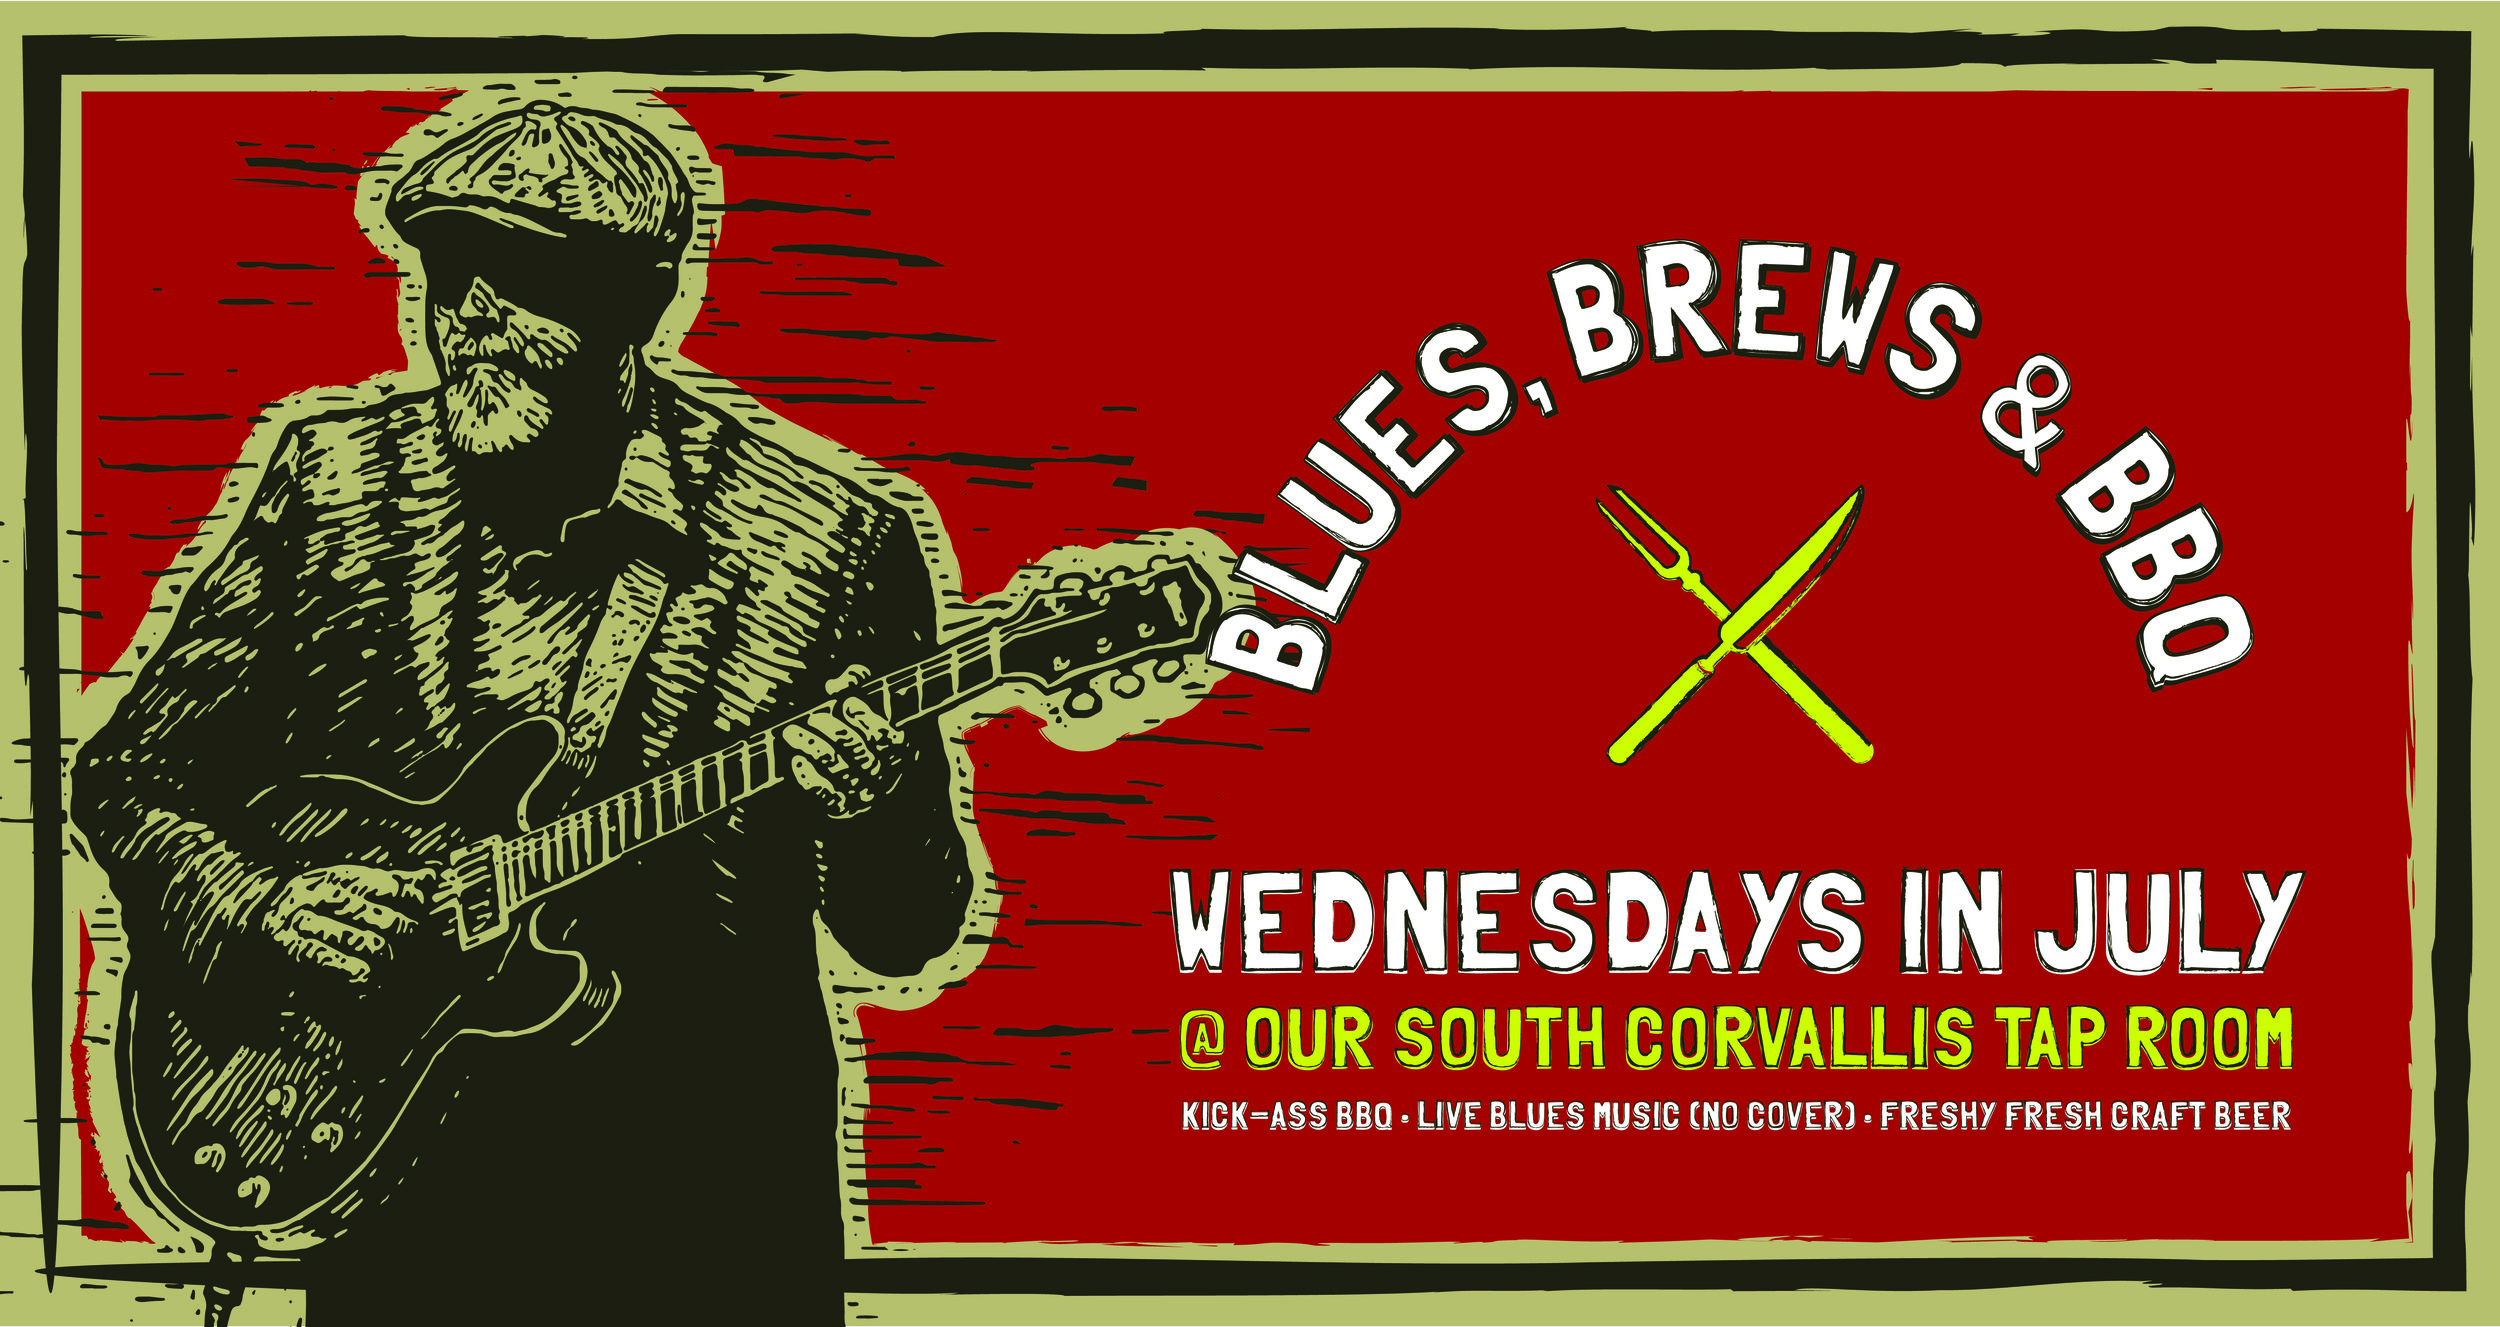 "Join us Wednesdays in July for ""Blues, Brews & BBQ"" at our Tap Room! Enjoy cover-free blues from local musicians, kick-ass BBQ specials, and freshy fresh beer brewed feet from your seat. This Wednesday we welcome Slipshod and feature a menu of Smoked Turkey Leg with Rootbeer Mustard with sides Mac and Cheese, Slaw, Watermelon and Corn Muffins."